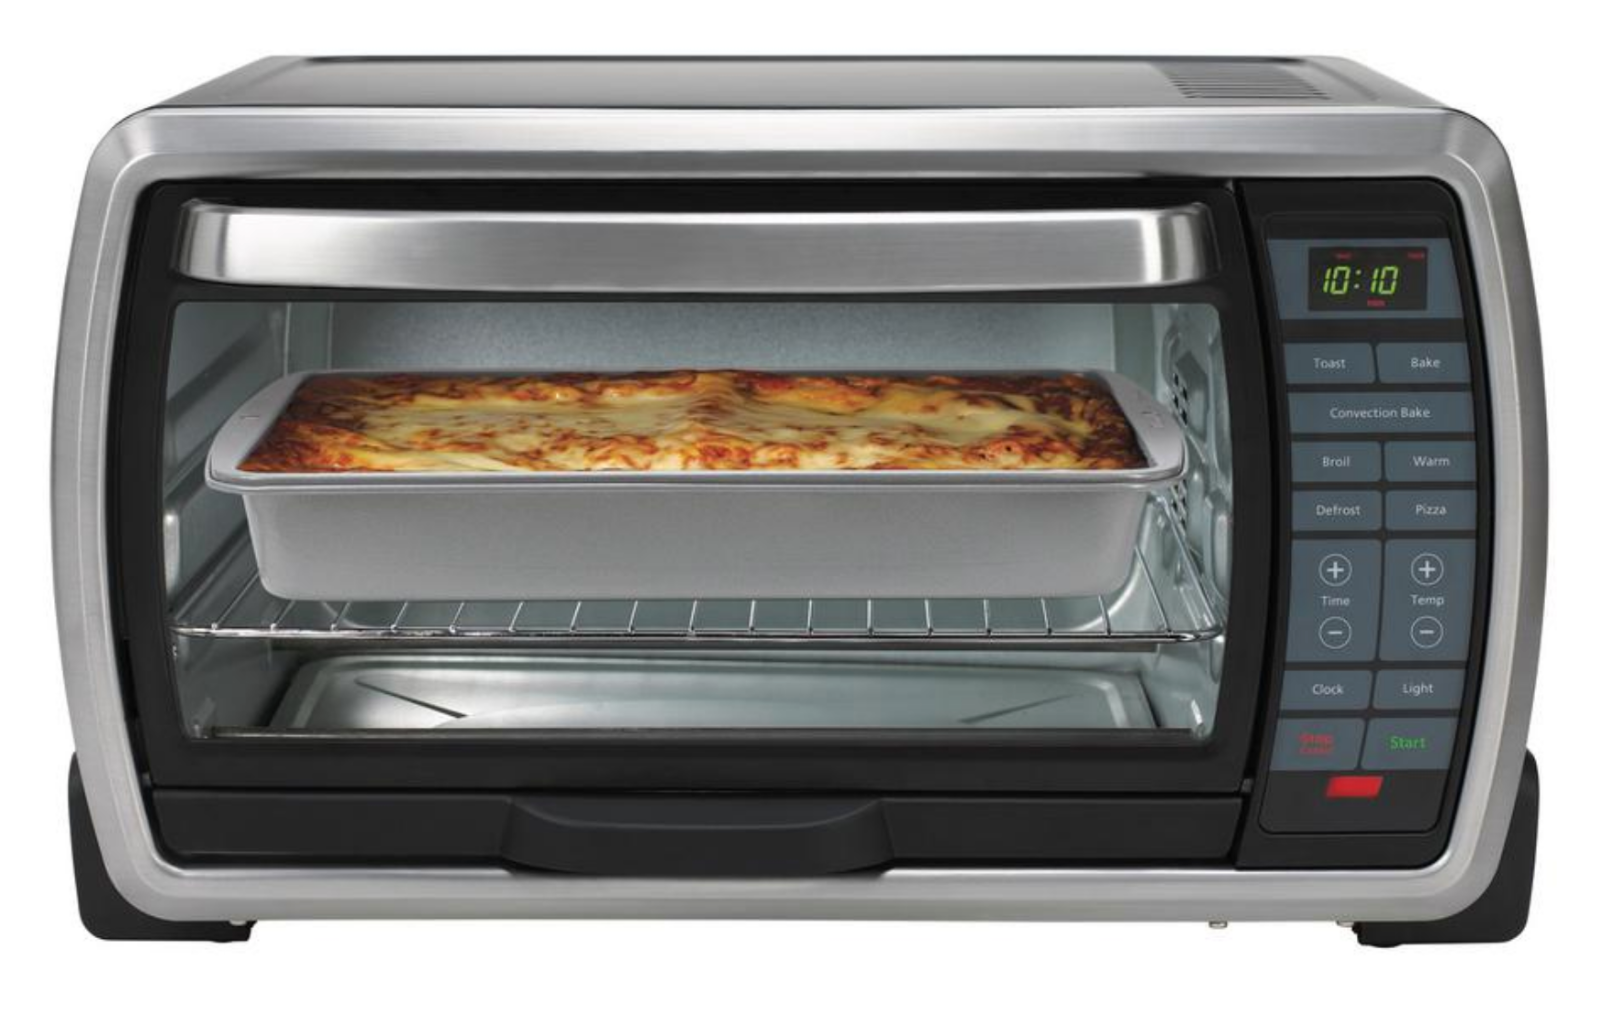 Oster Large Digital Countertop Convection Toaster Oven, 6 Sl